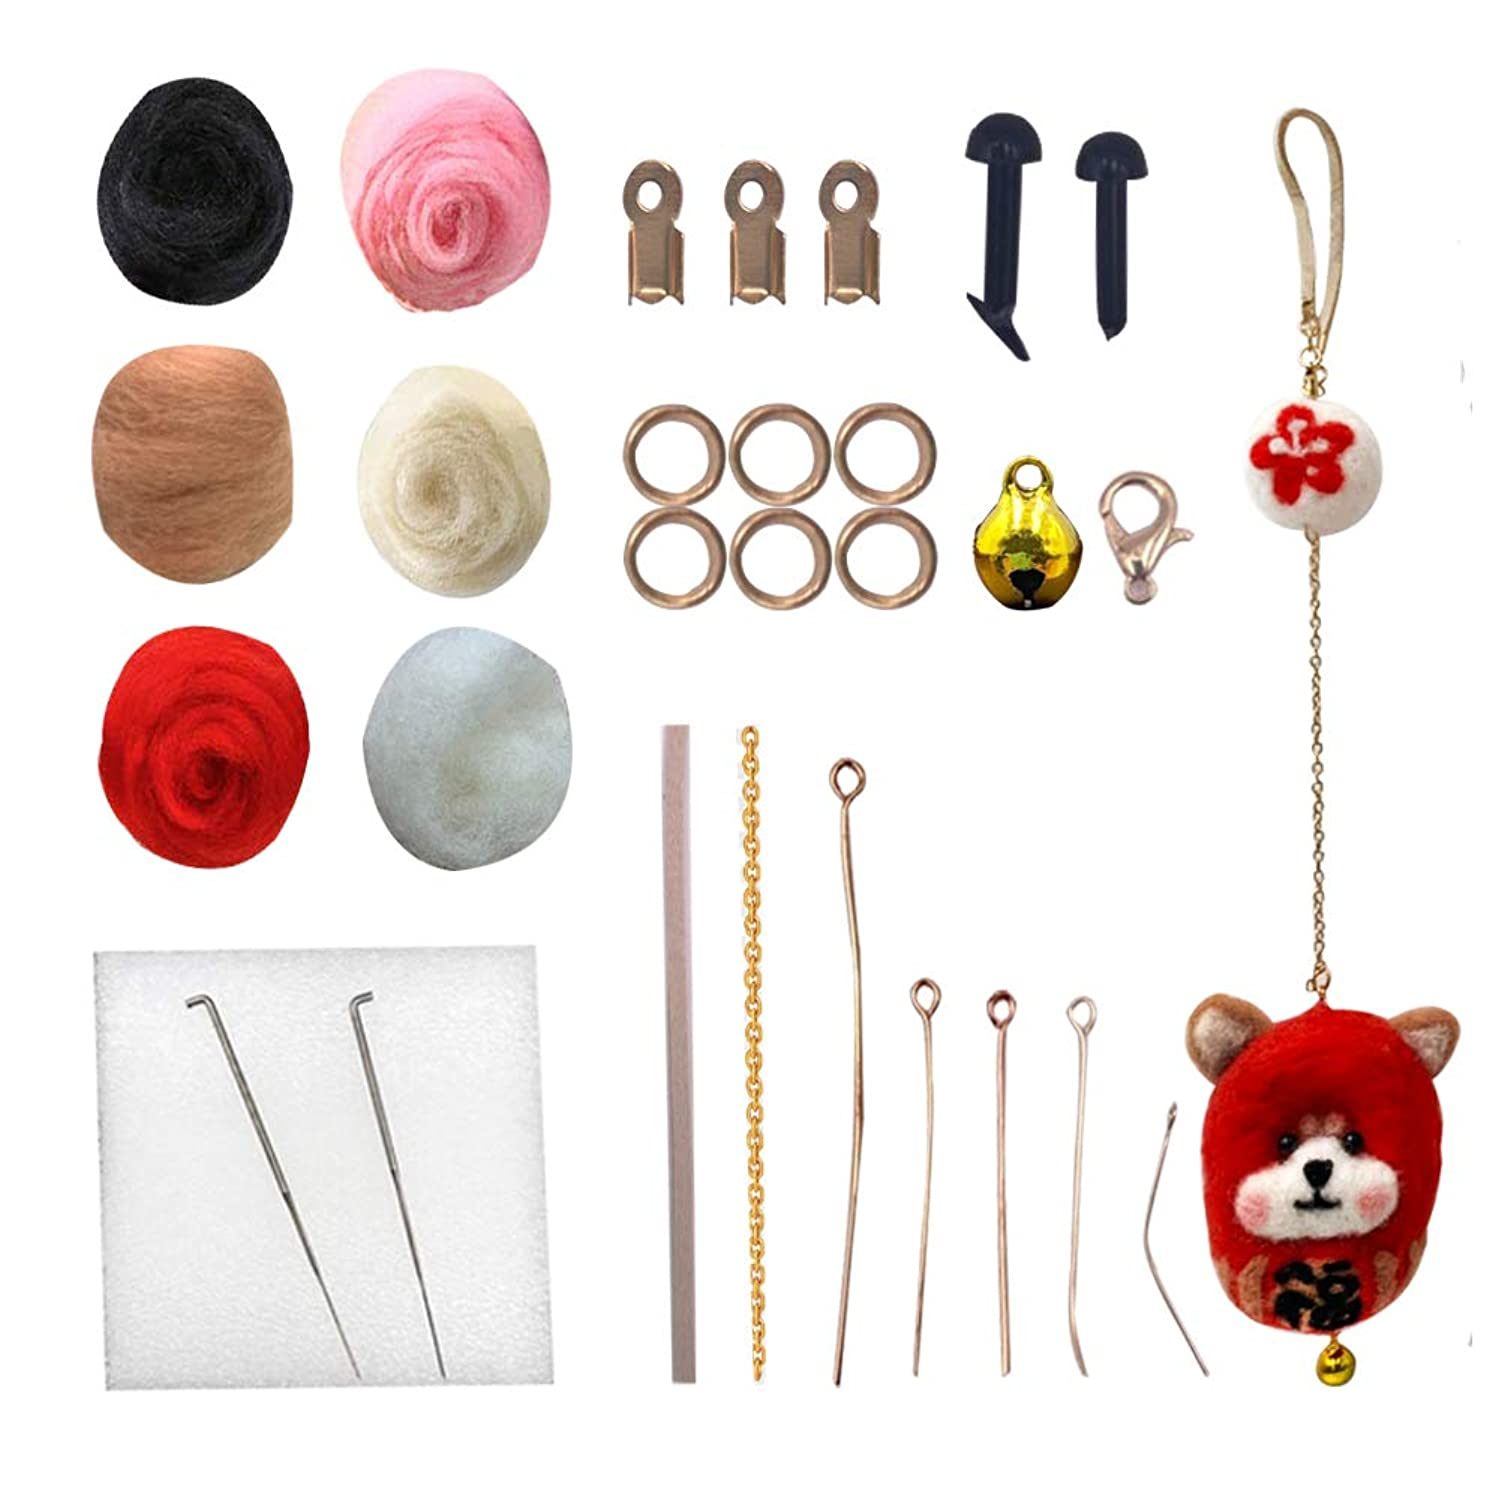 ?Barbee?Needle Felting Wool Felt Tools Set - DIY Handmade Craft Supplies Decorations Ornaments Basic Starter Kits with Instruction for Beginners (Blessing Shiba Inu)